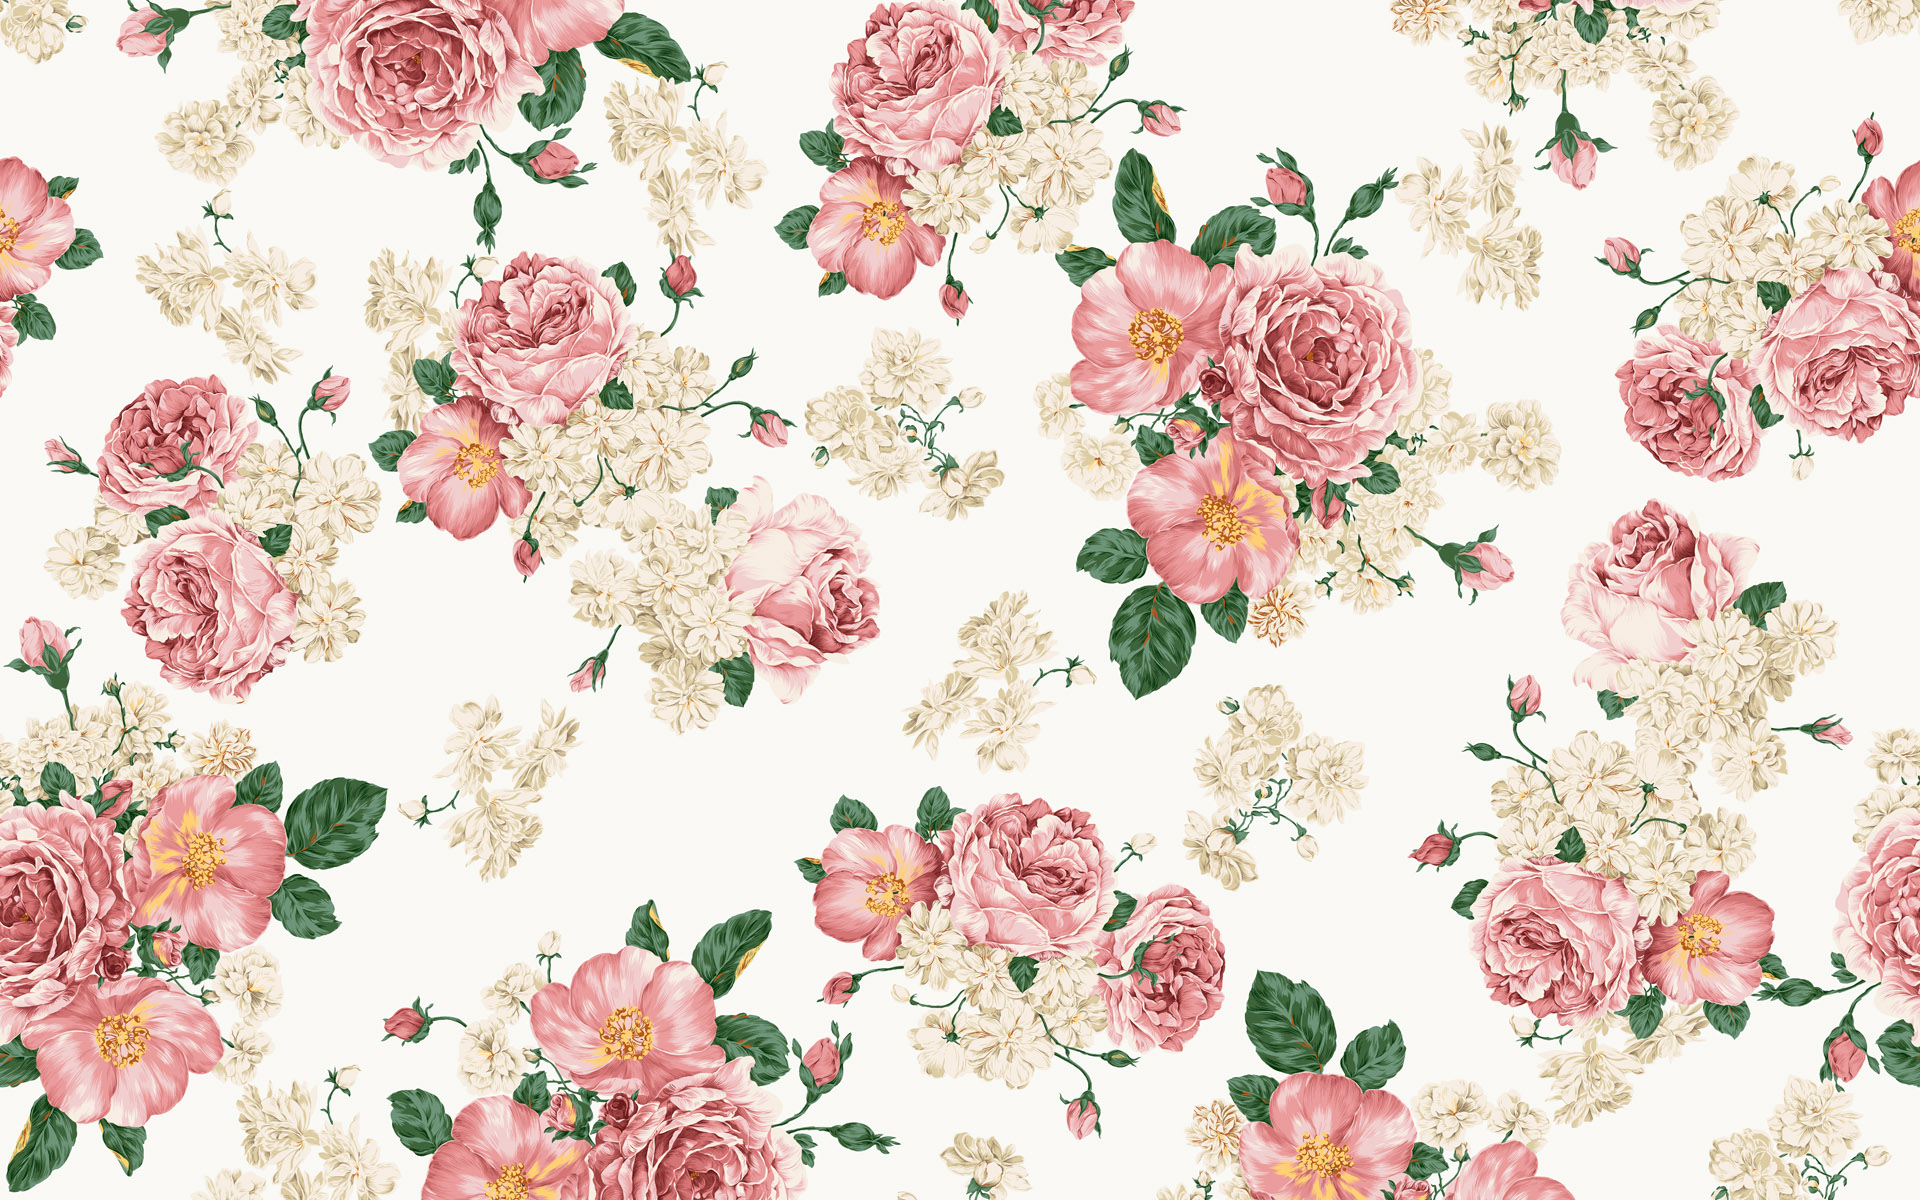 Fantastic Wallpaper Horse Rose - rose_pattern  You Should Have_59516.jpg